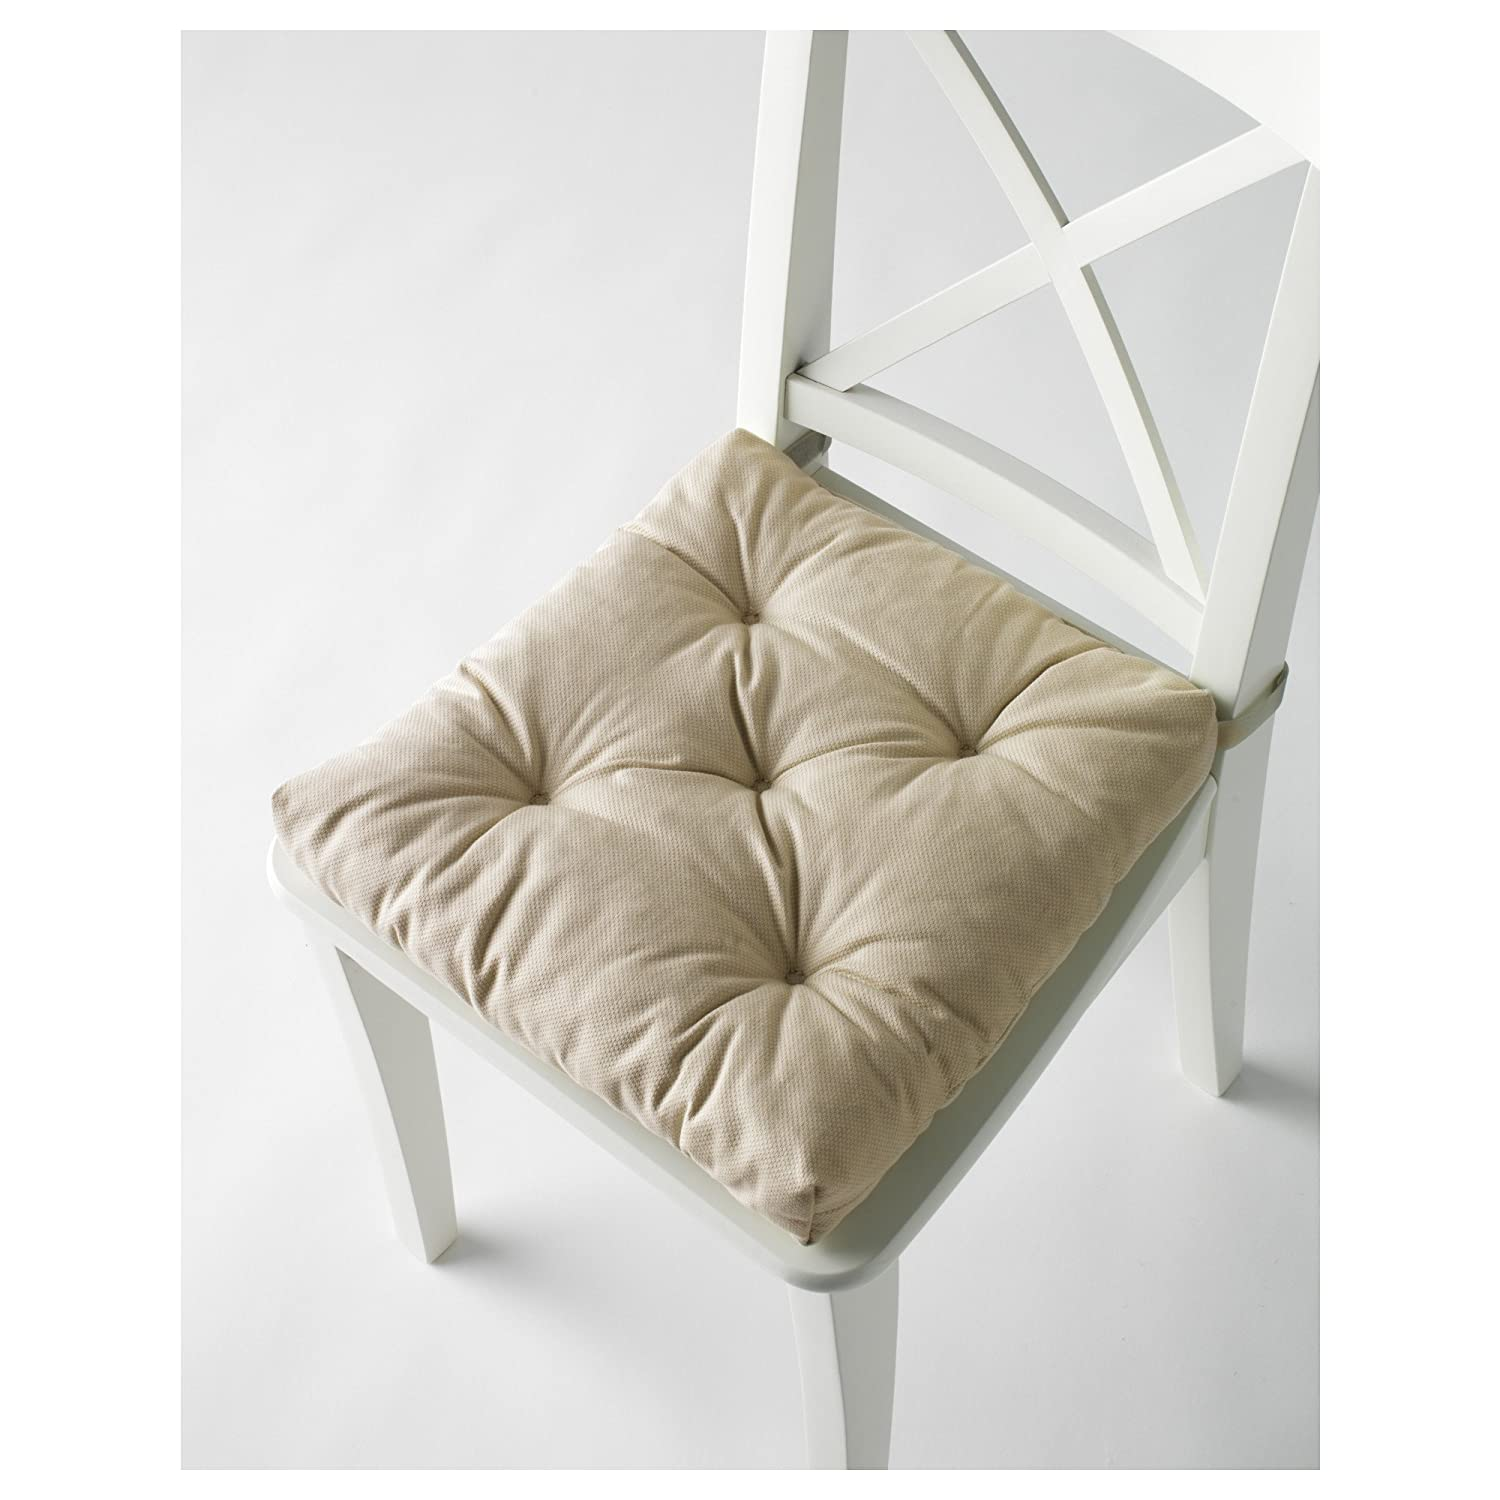 Genial Amazon.com: Ikeau0027s MALINDA Chair Cushion (3, Light Beige): Home U0026 Kitchen